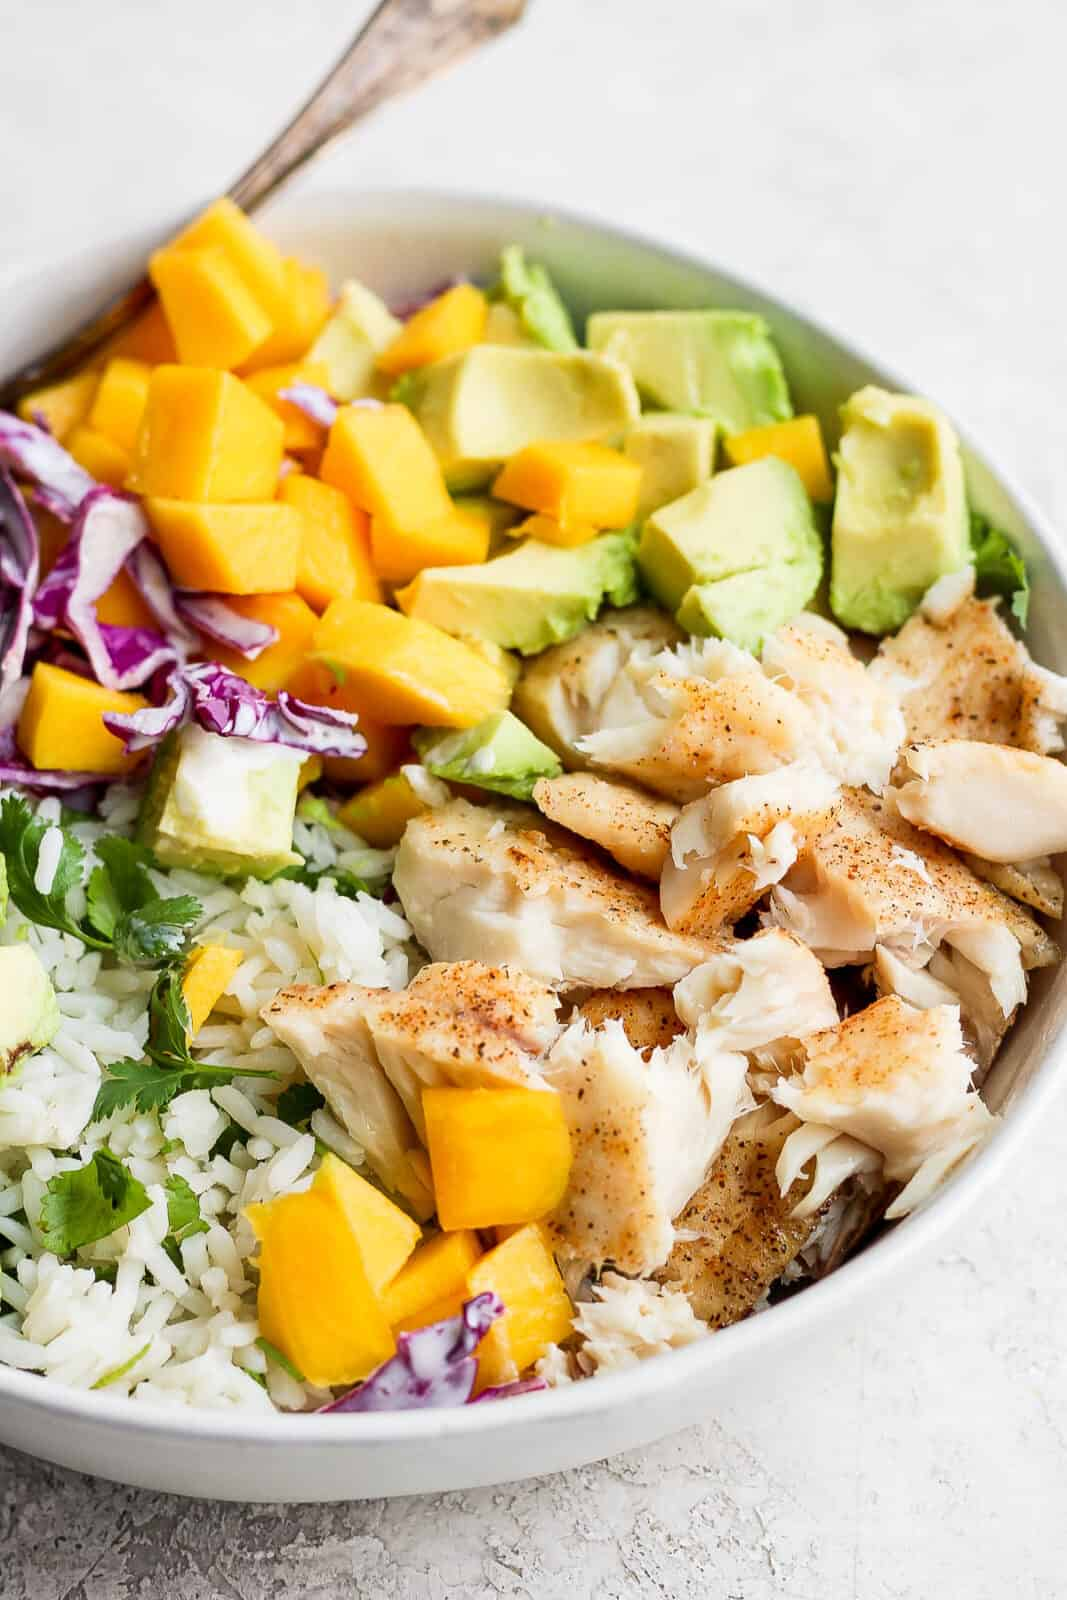 Fish taco bowl with rice and a fork.